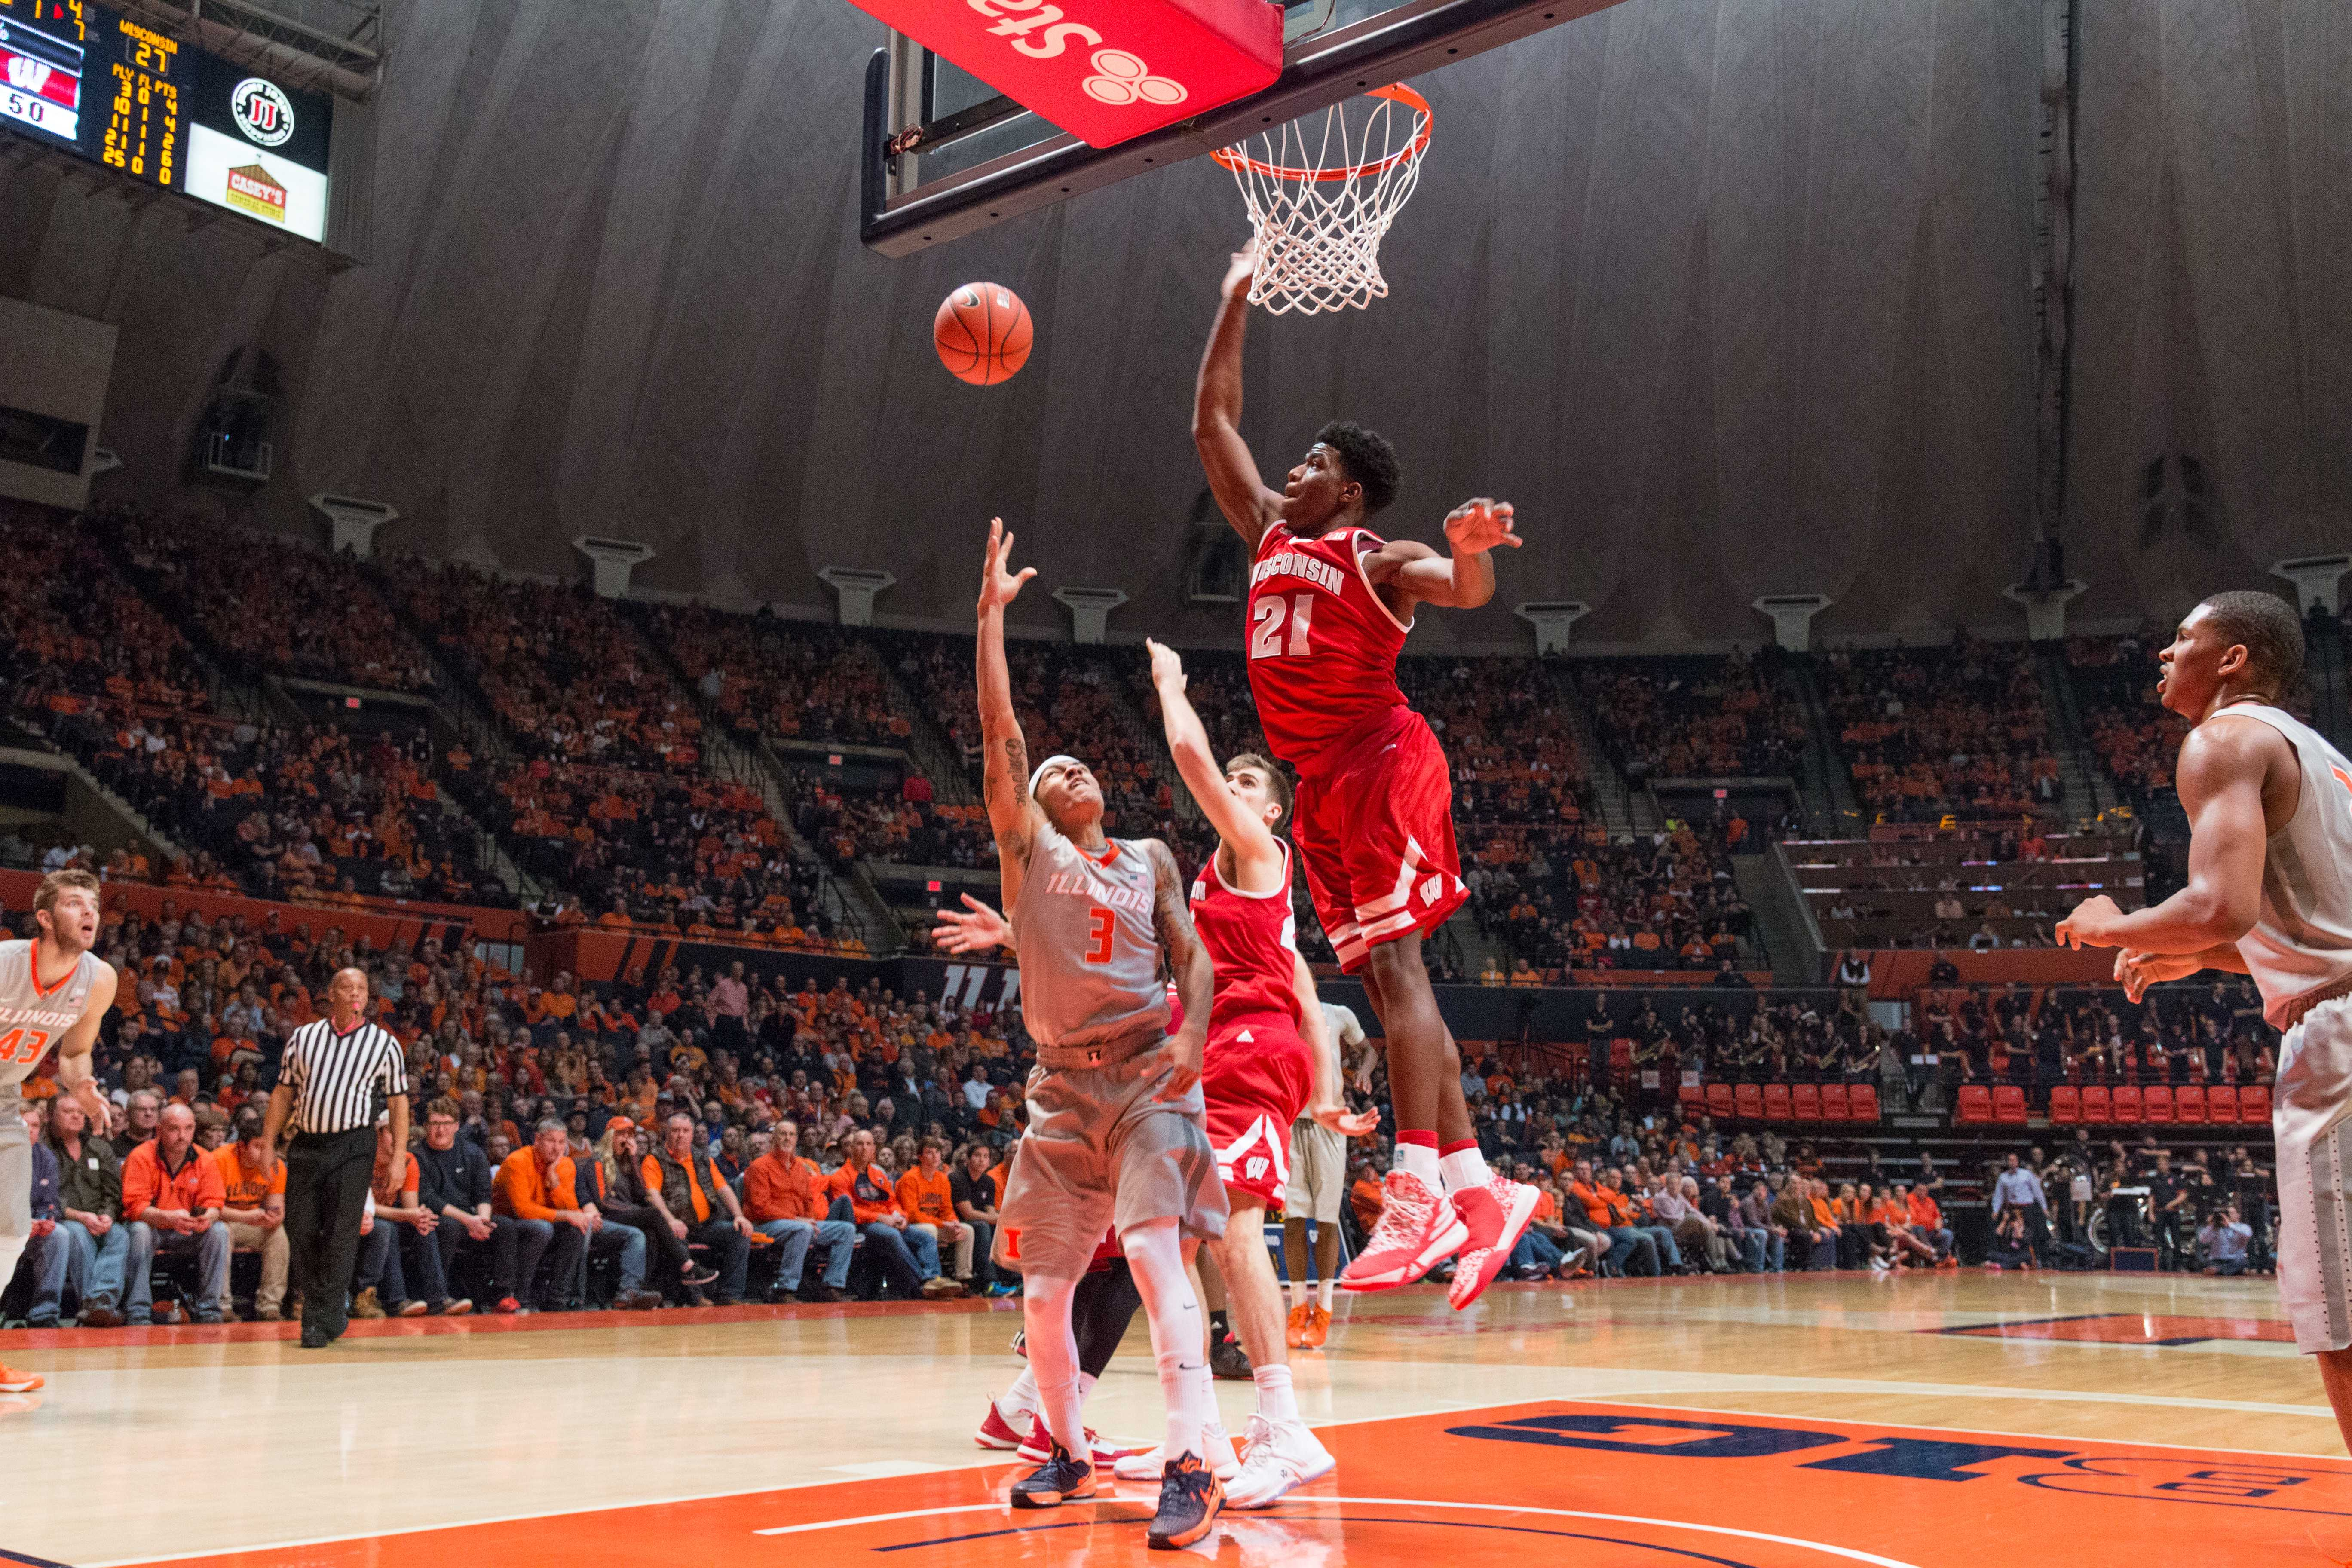 Wisconsin's Khalil Iverson (21) attempt to block Illinois guard Khalid Lewis' layup during the Illini's 63-55 loss to the Badgers at State Farm Center on Sunday, Jan. 31. The Illini have now lost three straight home games.